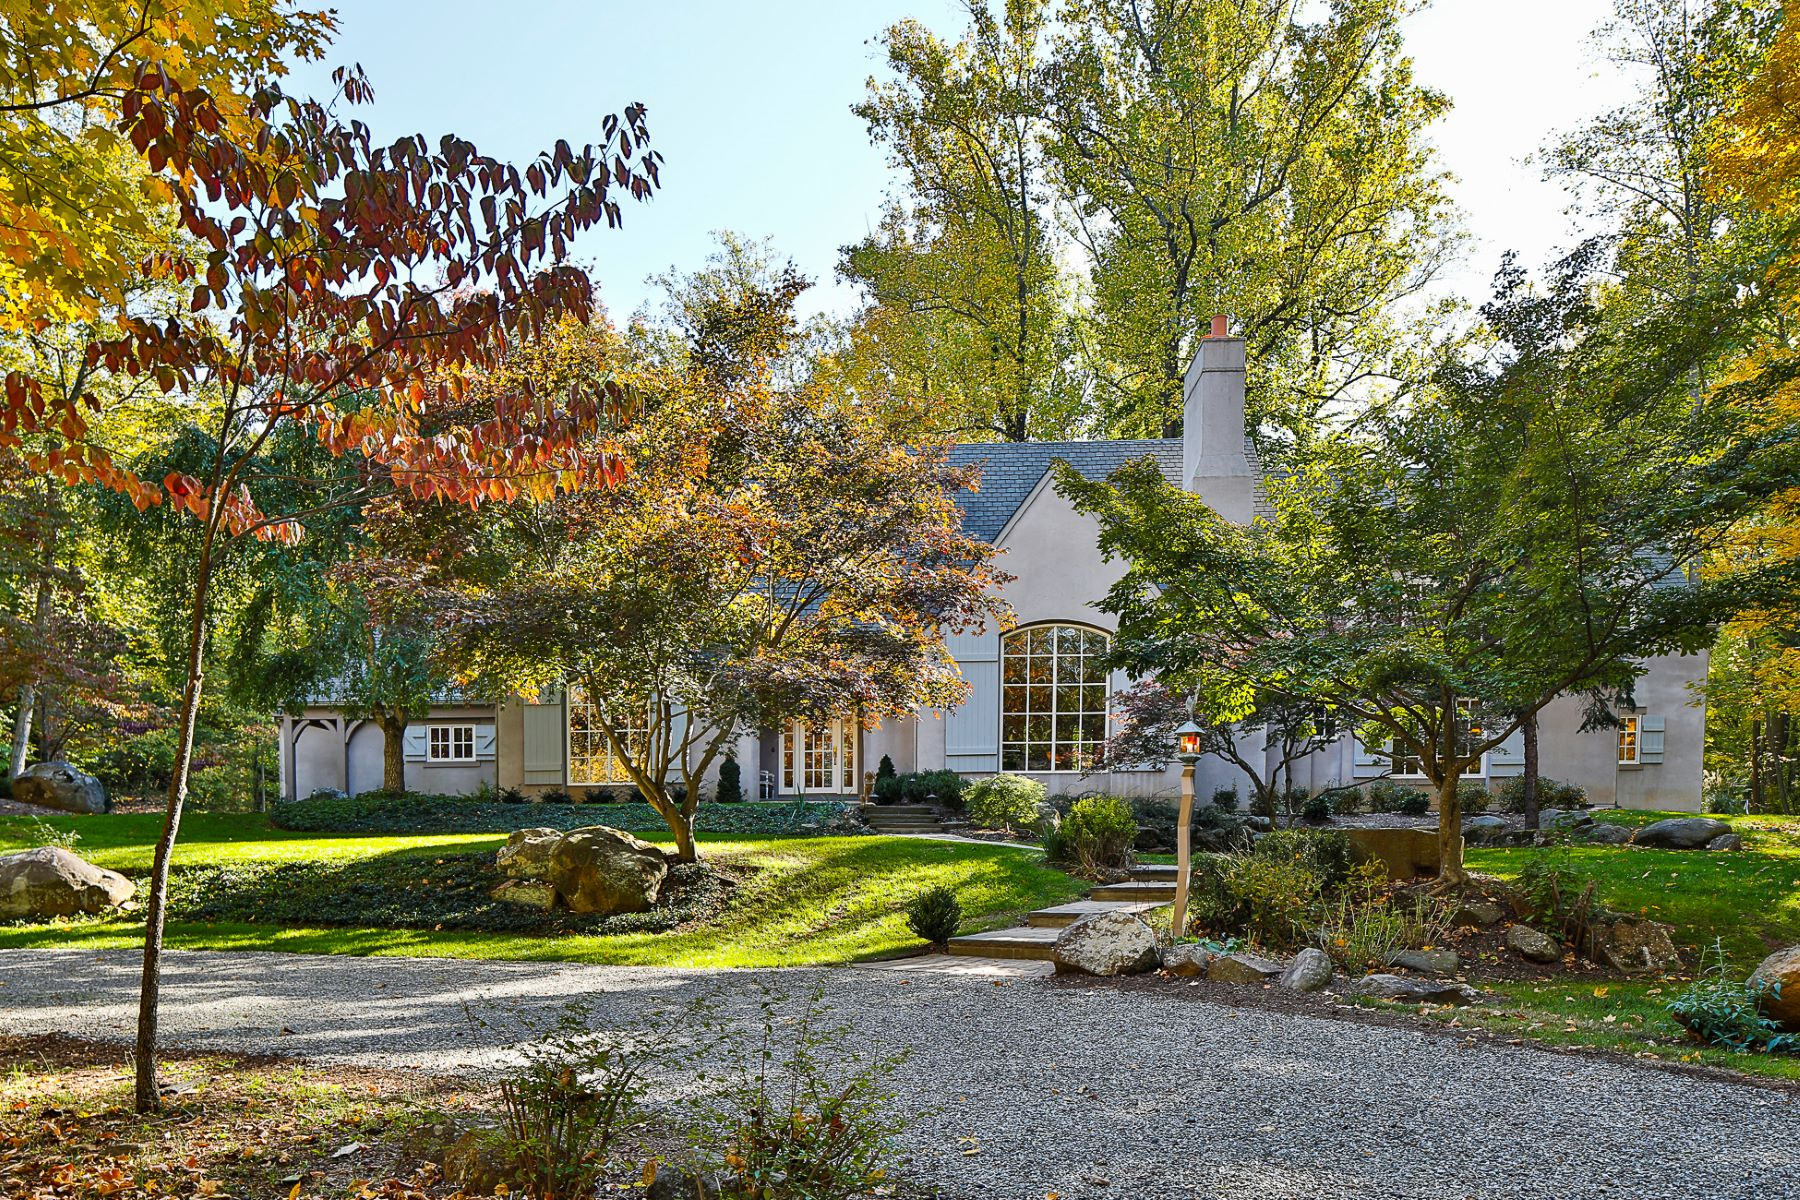 단독 가정 주택 용 매매 에 Romantic, Wooded Views and Sophisticated Style 316 Cherry Valley Road Princeton, 뉴저지, 08540 미국